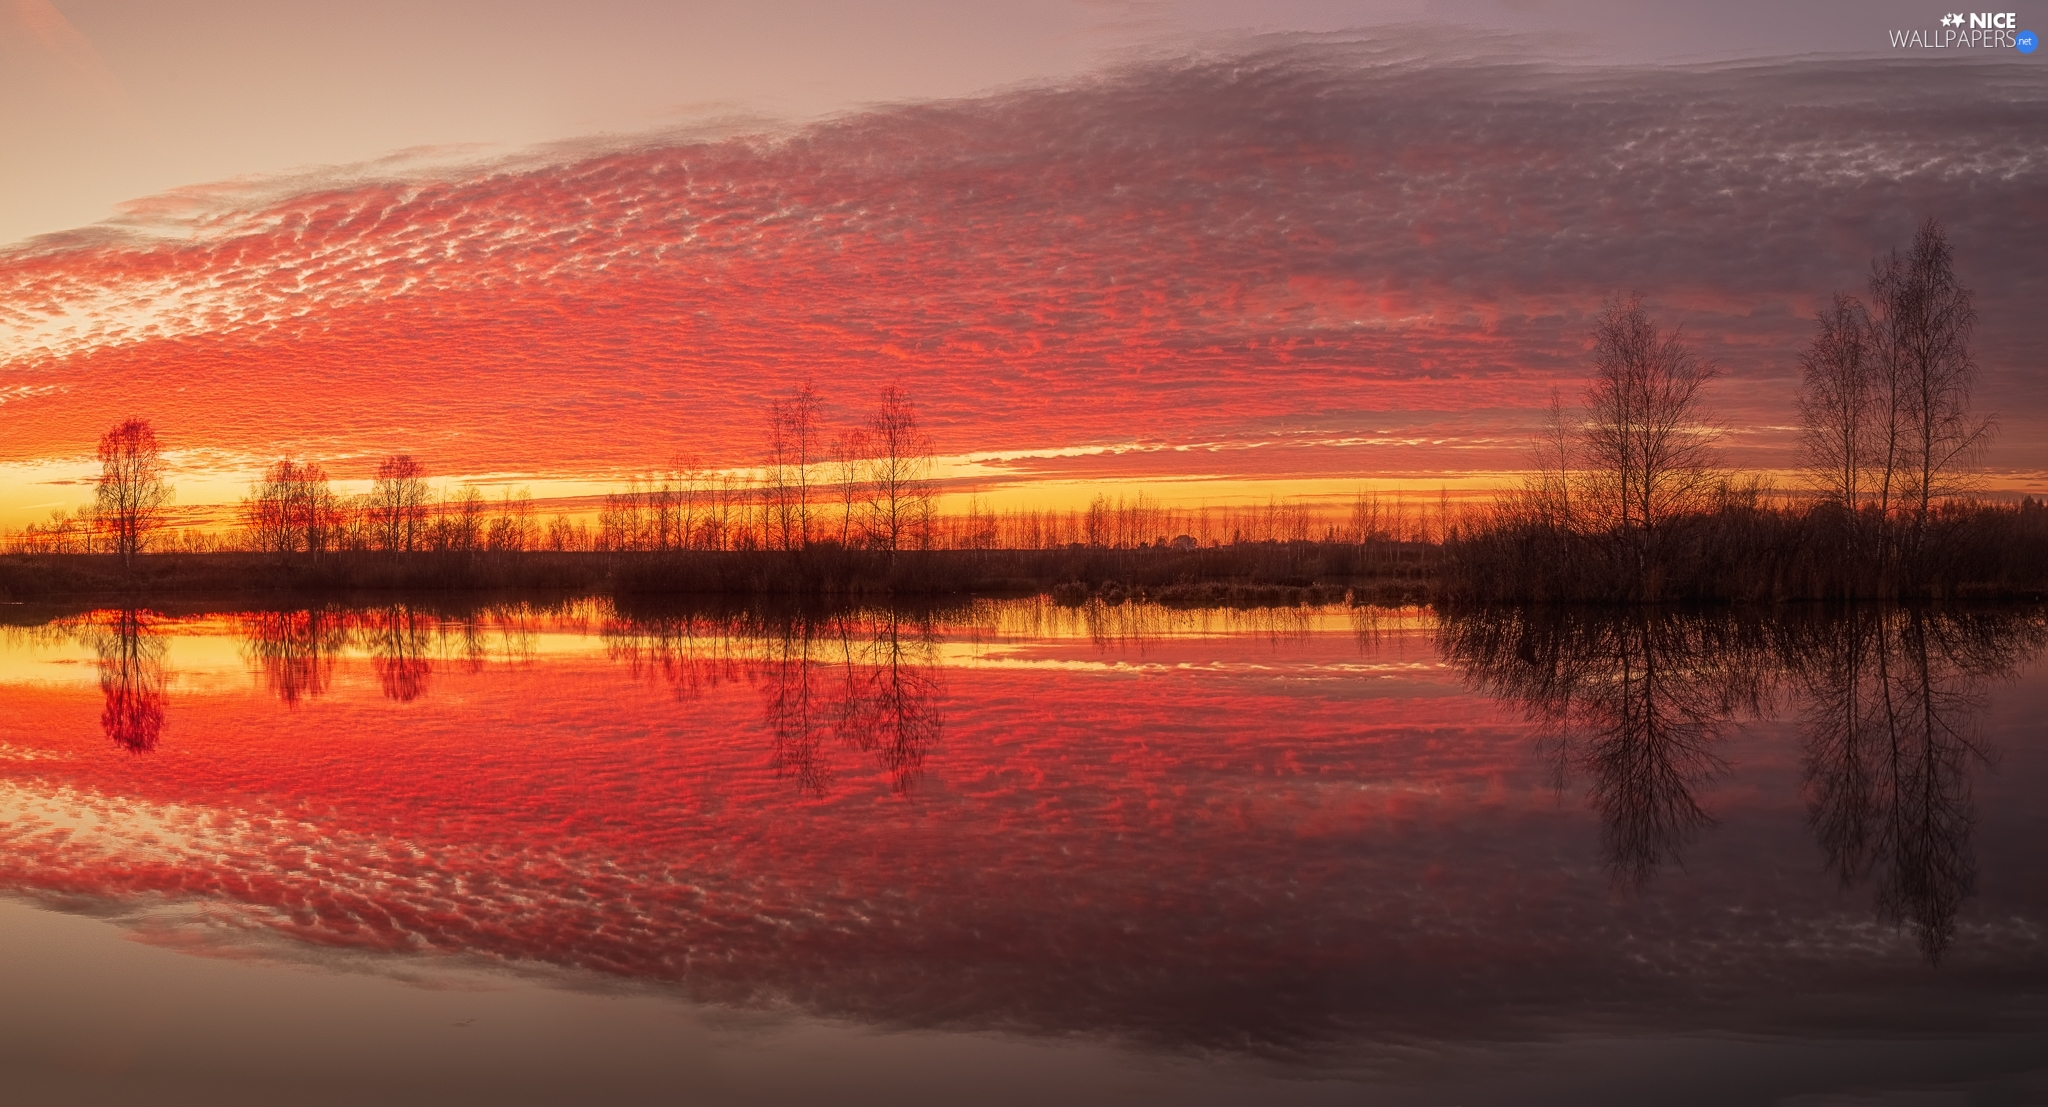 Sky, clouds, reflection, River, viewes, color, Great Sunsets, trees